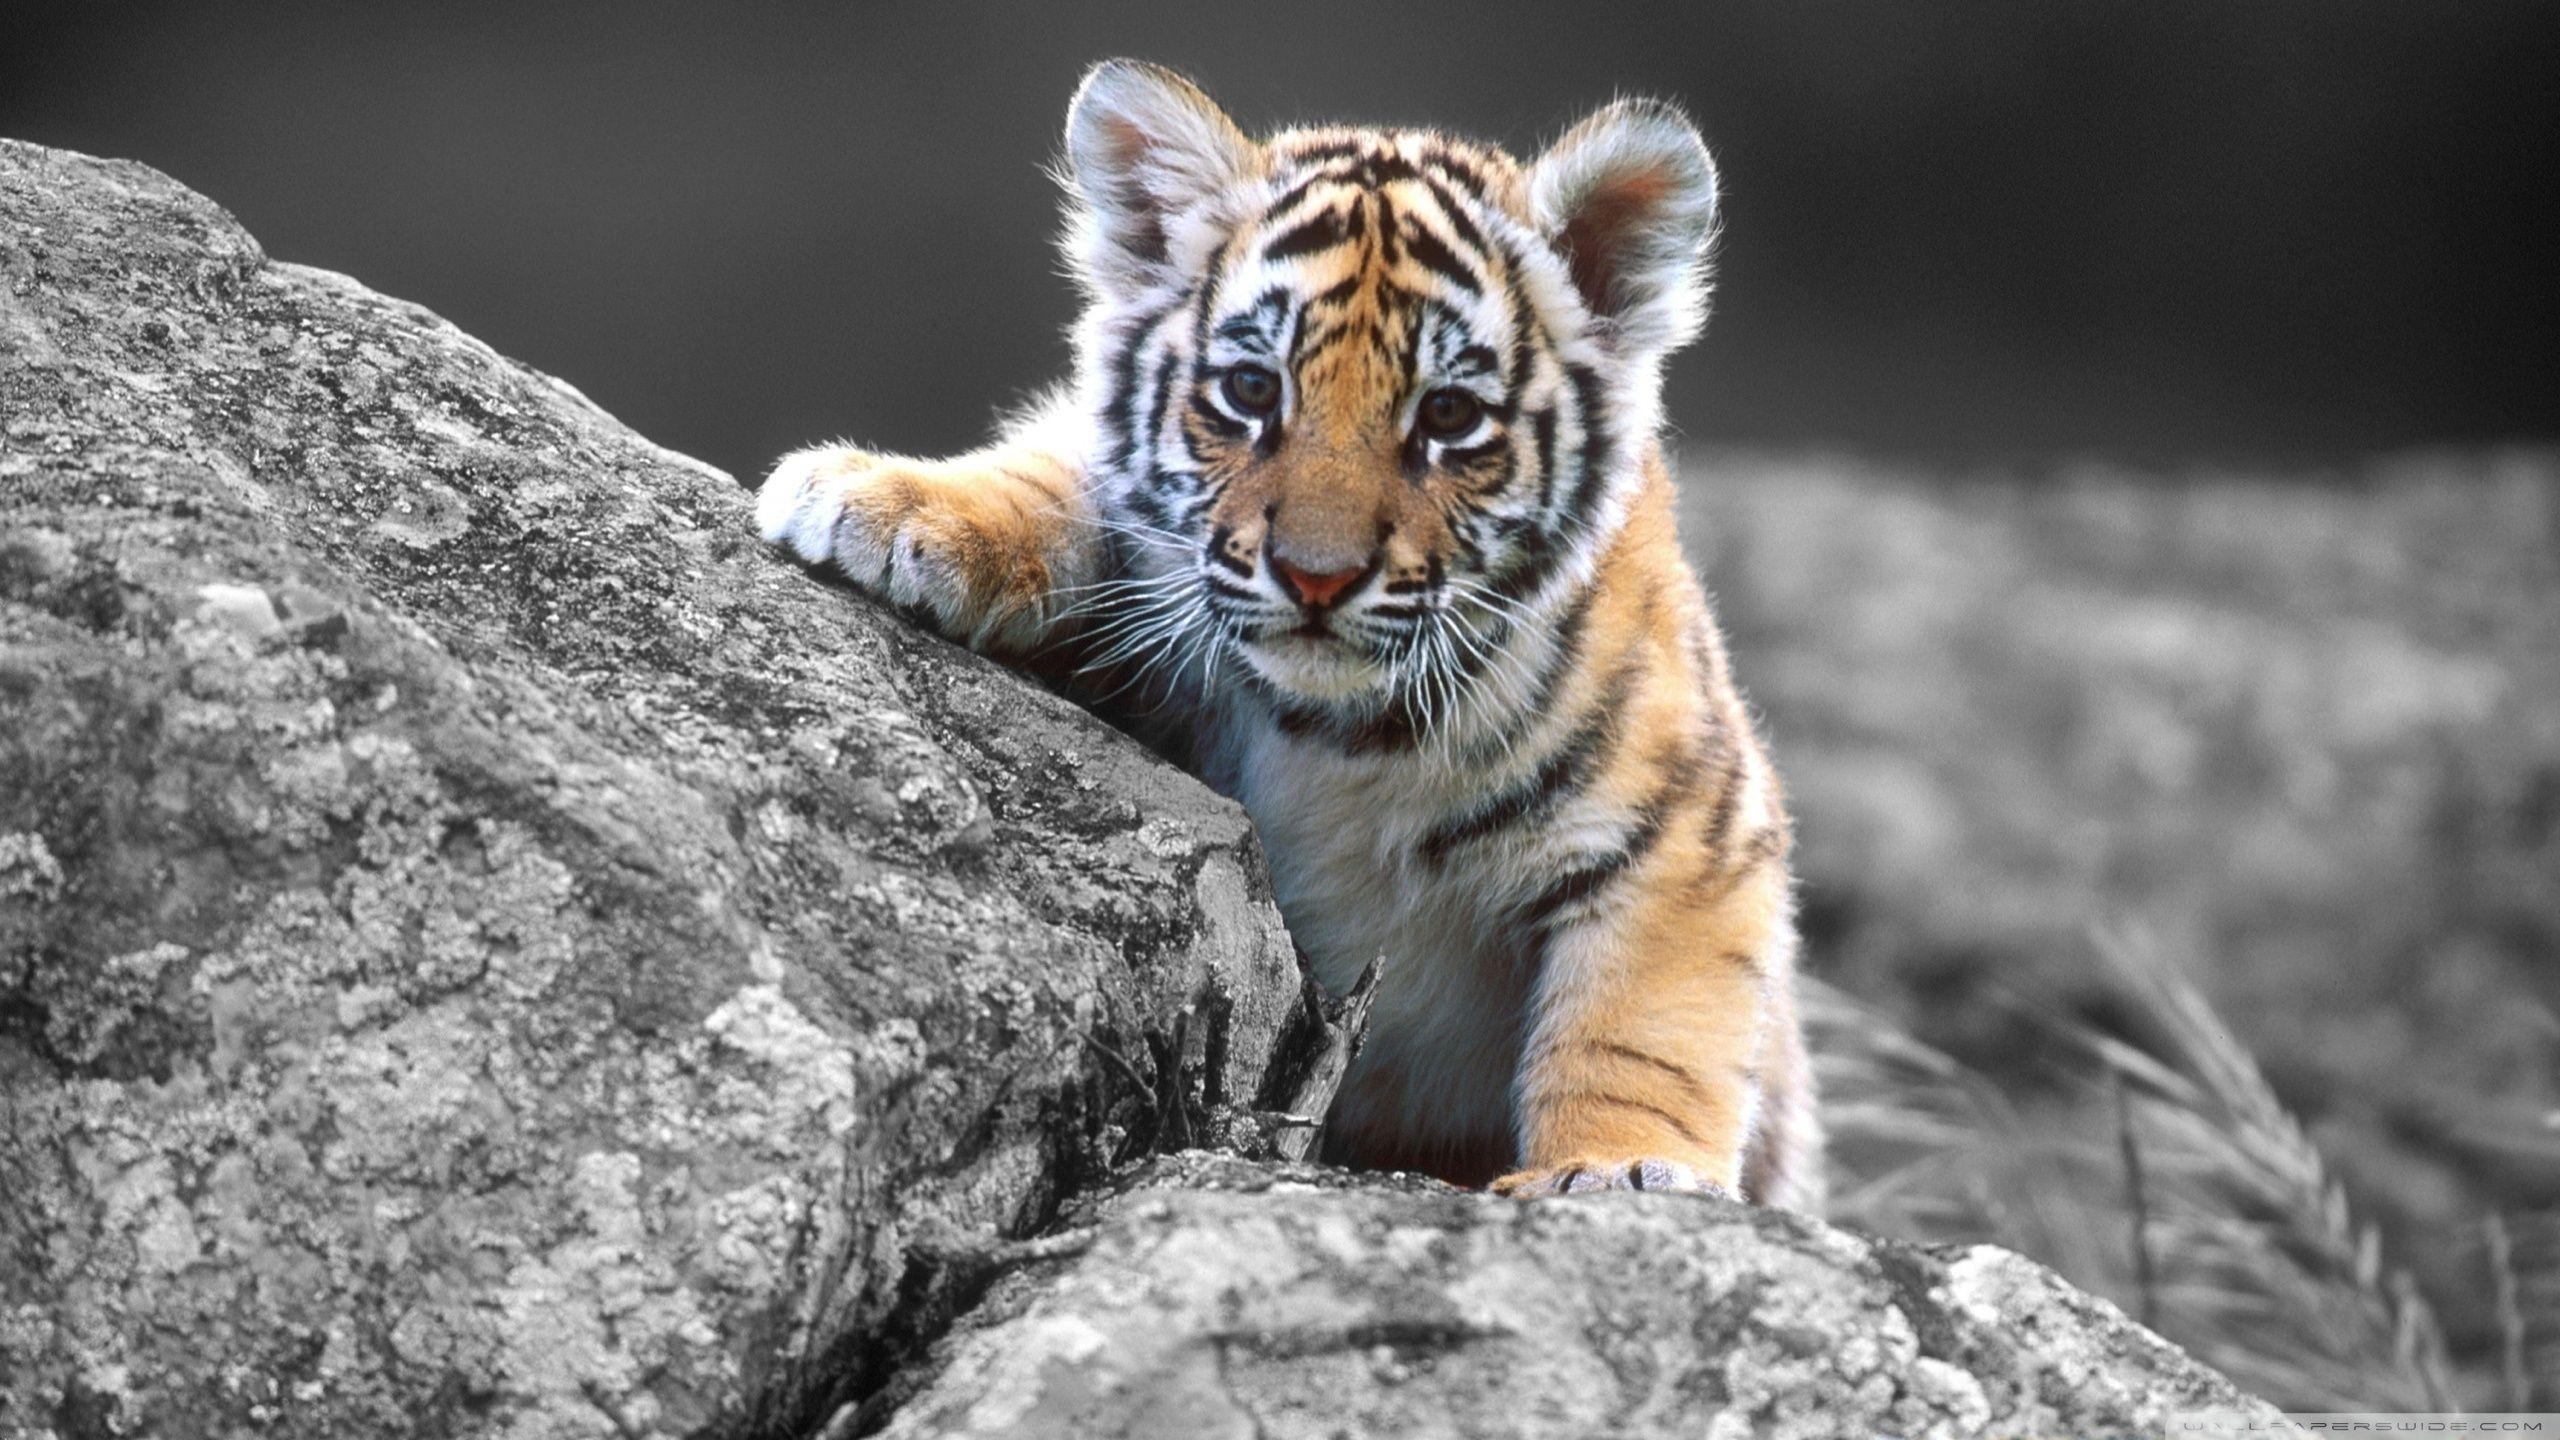 Cute Baby Tigers Wallpapers Wallpaper Cave